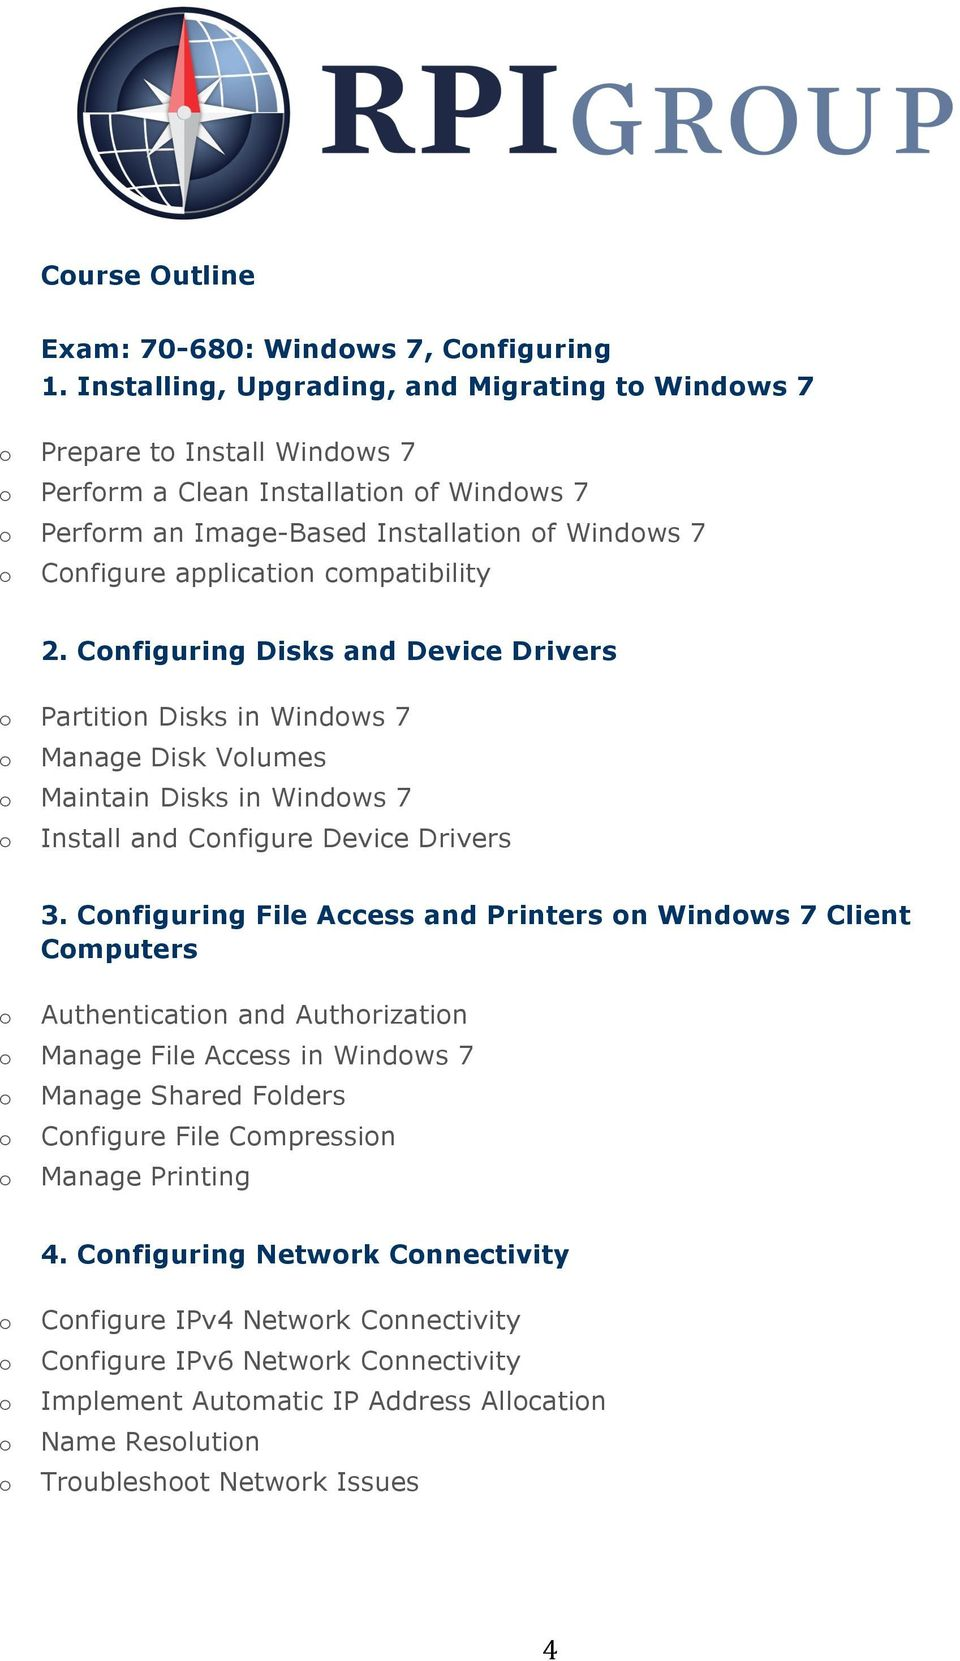 cmpatibility 2. Cnfiguring Disks and Device Drivers Partitin Disks in Windws 7 Manage Disk Vlumes Maintain Disks in Windws 7 Install and Cnfigure Device Drivers 3.